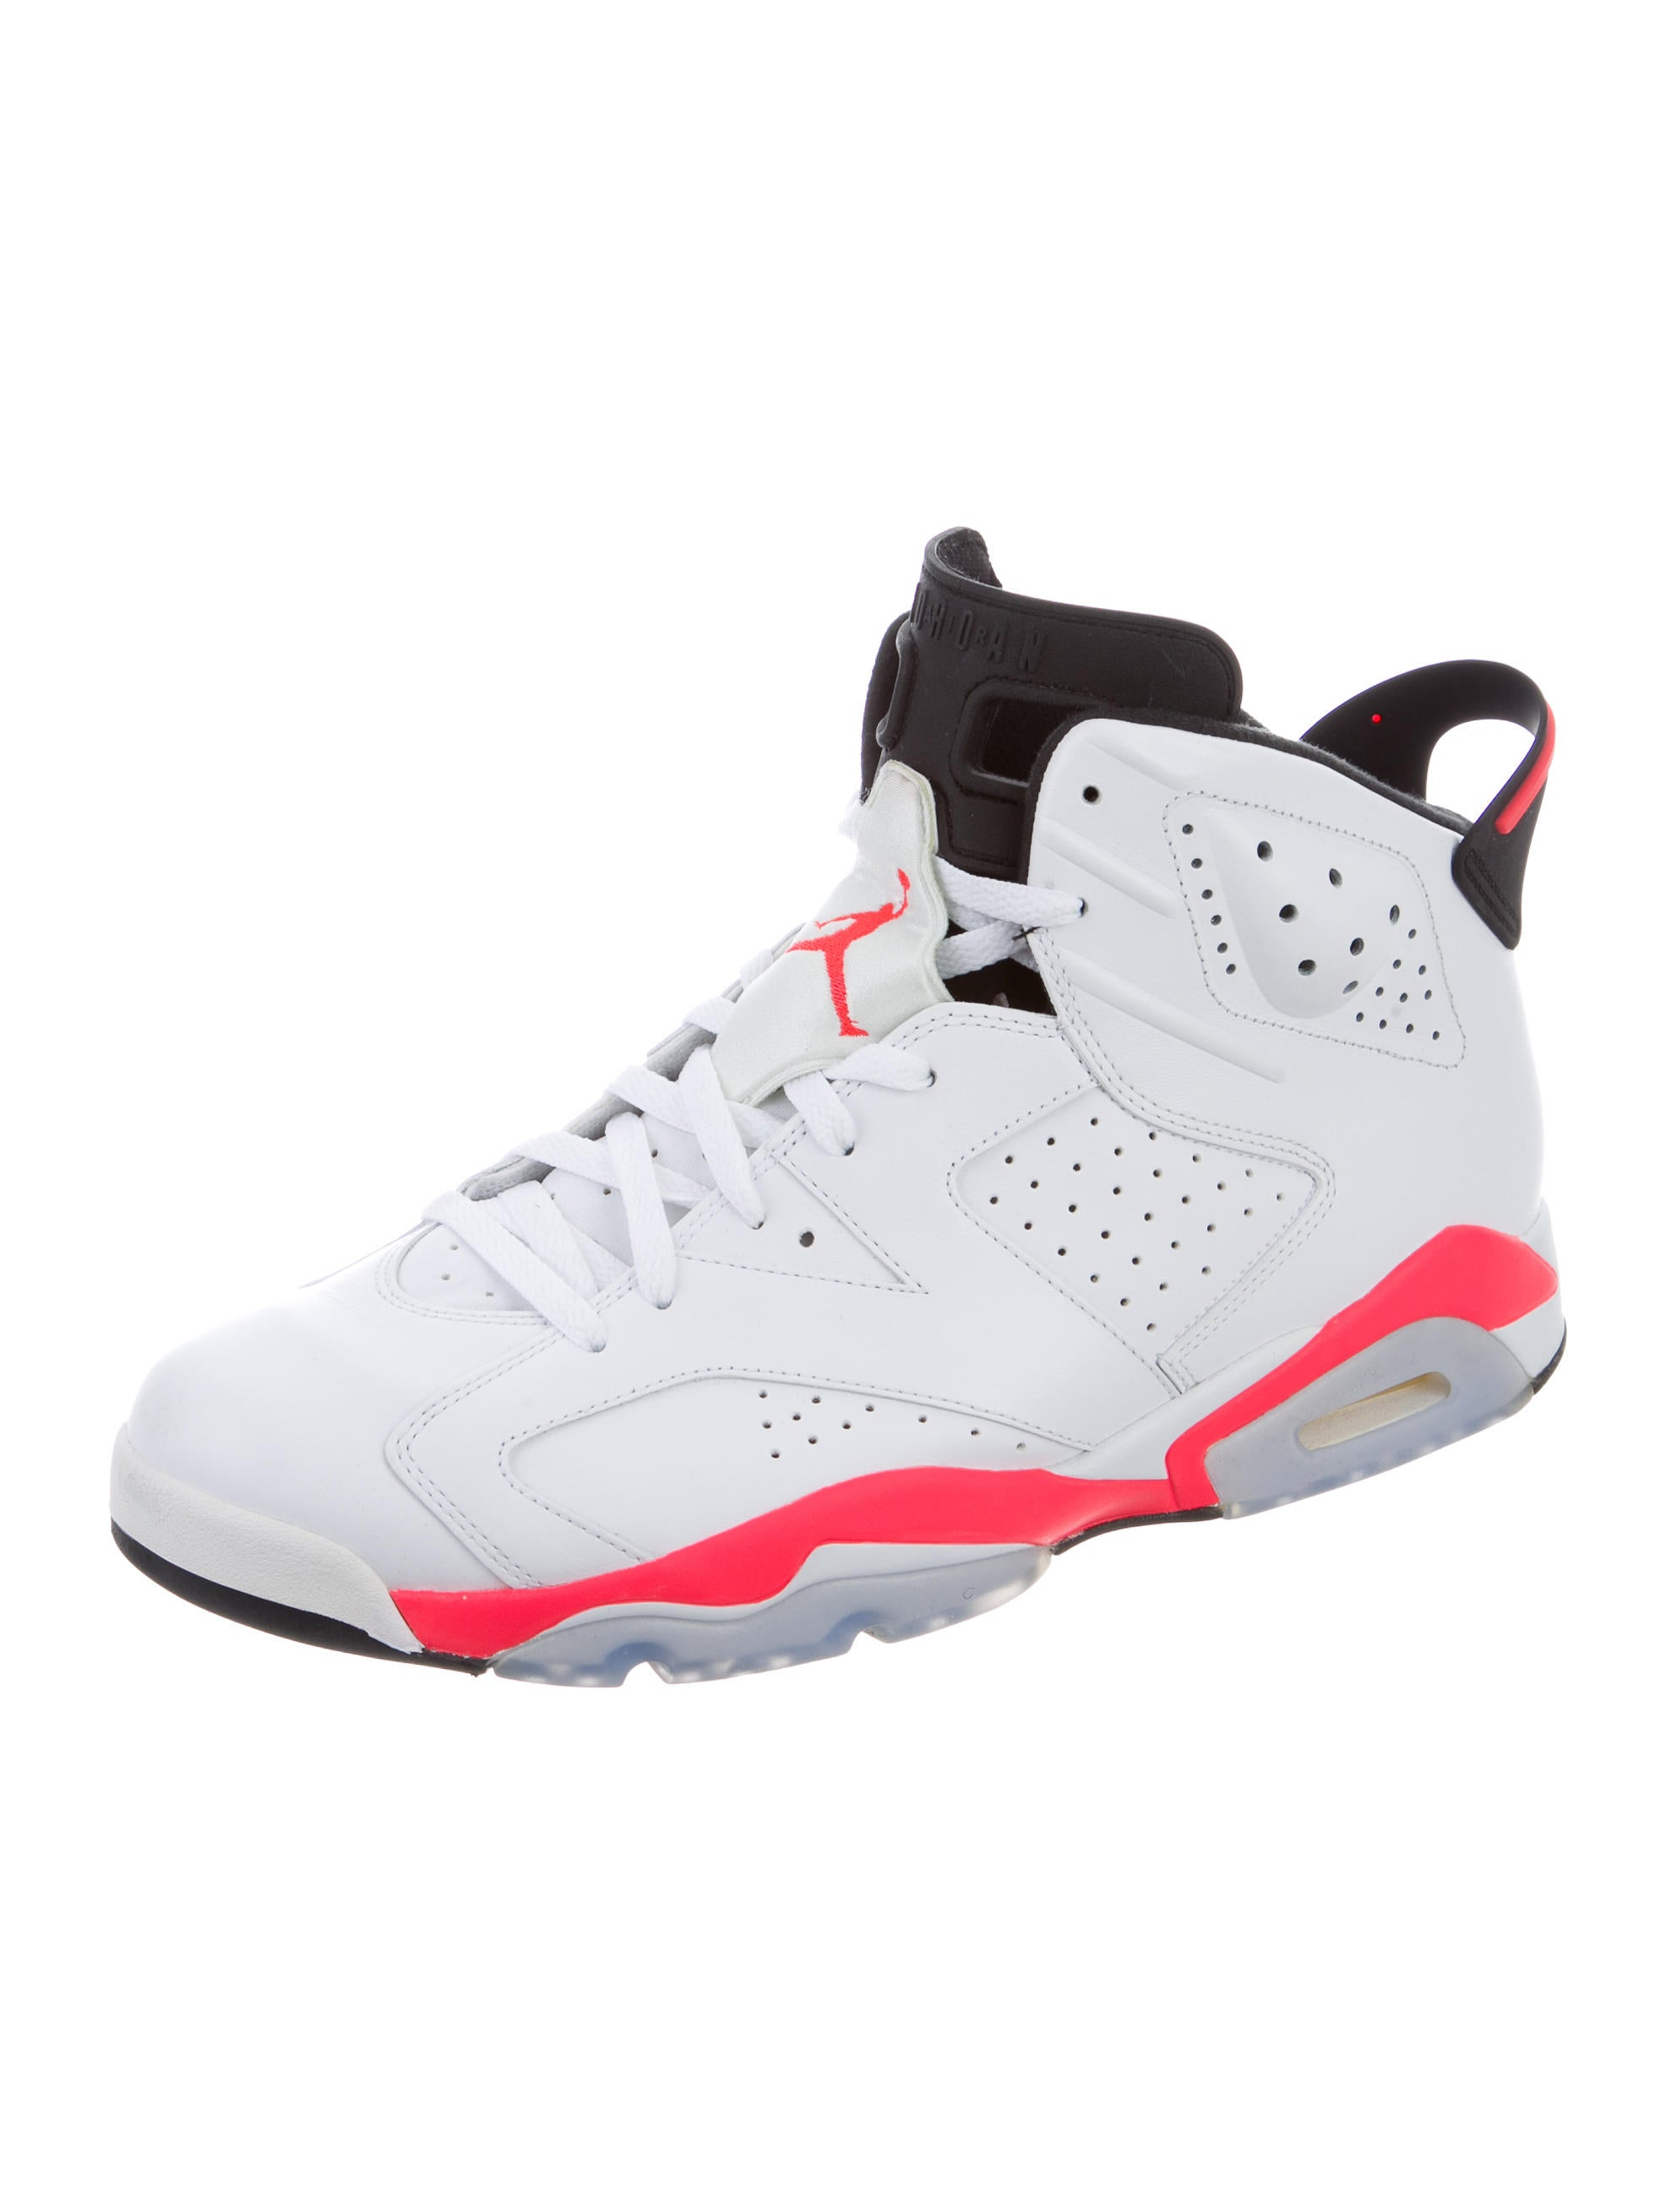 nike air jordan 6 retro infrared sneakers shoes. Black Bedroom Furniture Sets. Home Design Ideas